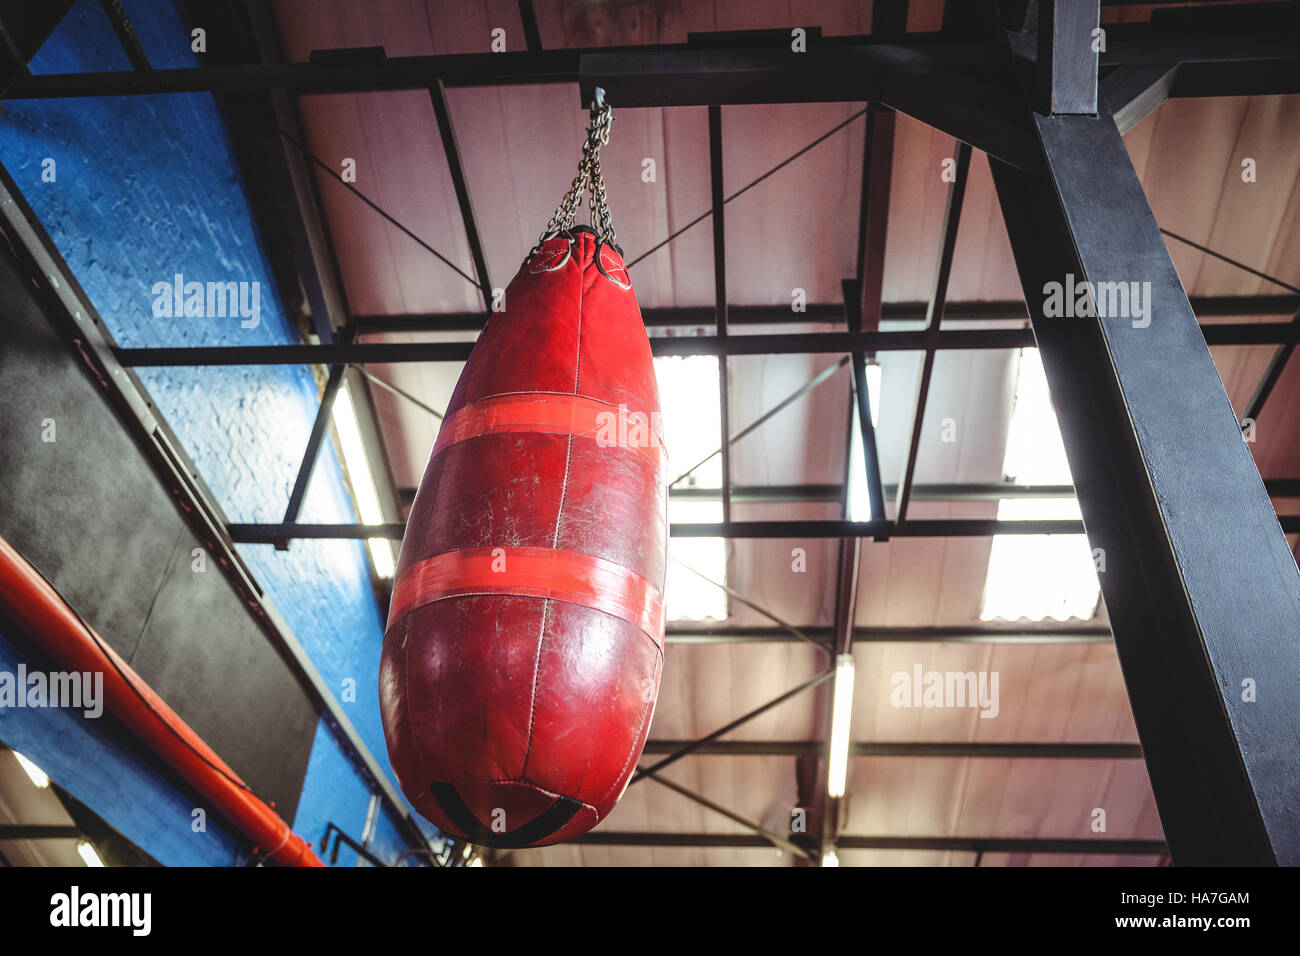 Punching bag hanging from ceiling - Stock Image